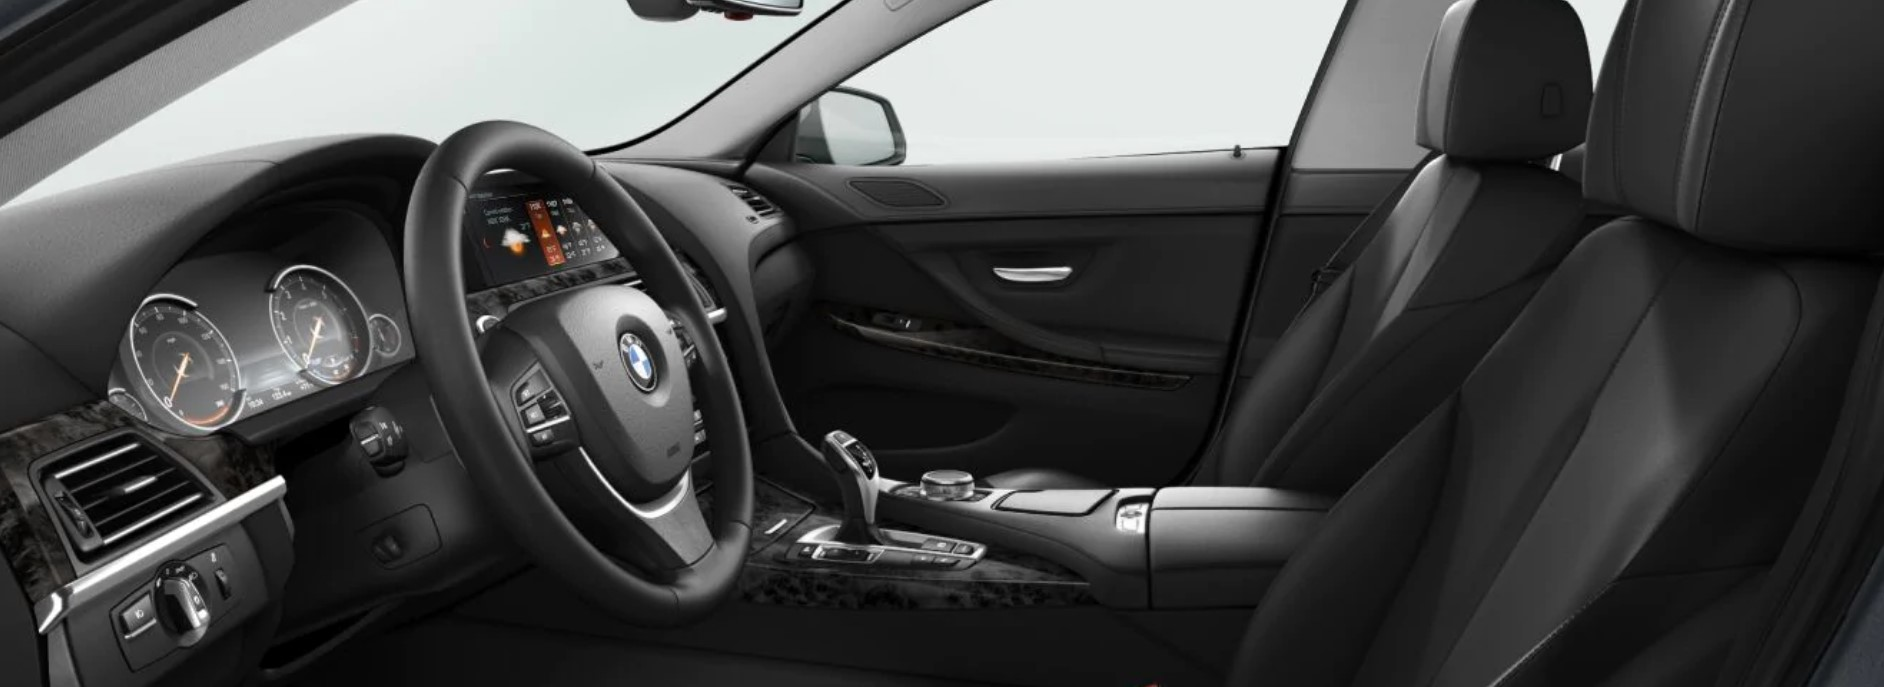 2019 BMW 640i Black Interior